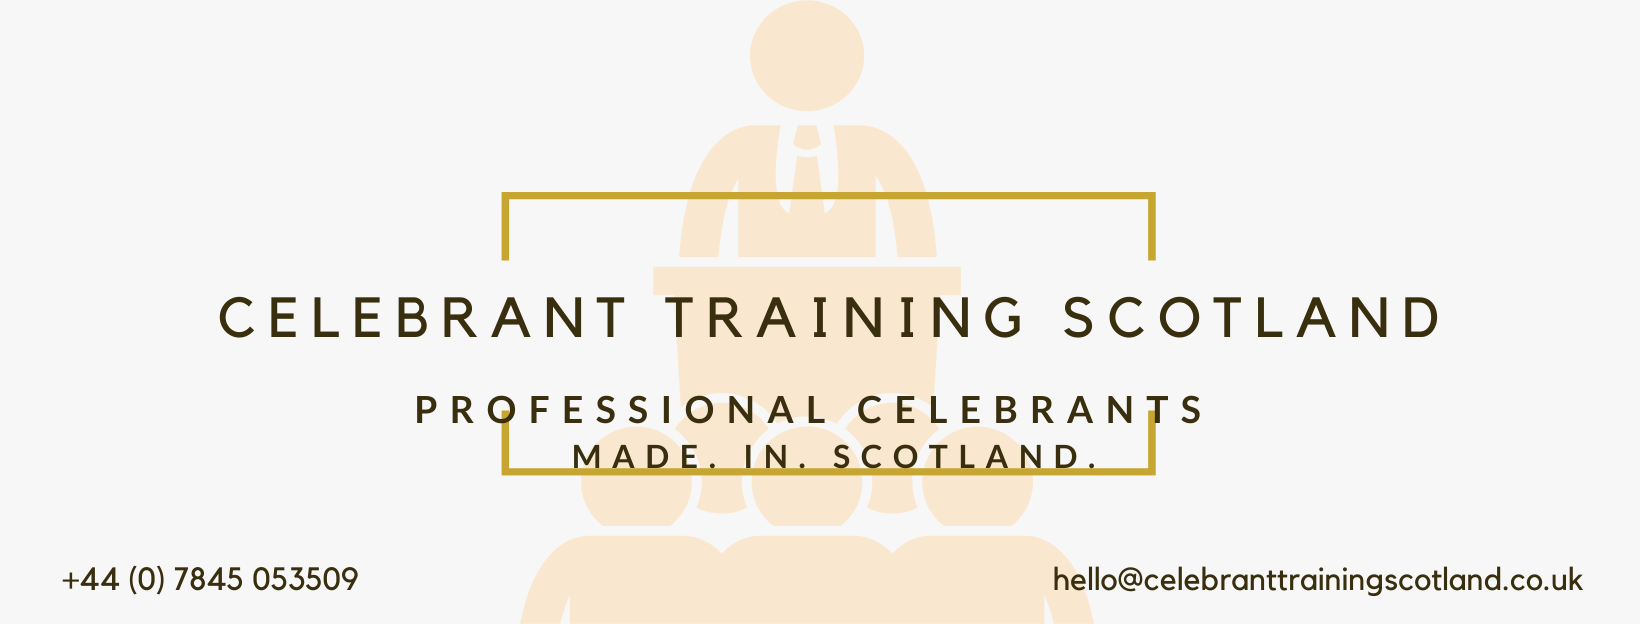 Celebrant Training Scotland